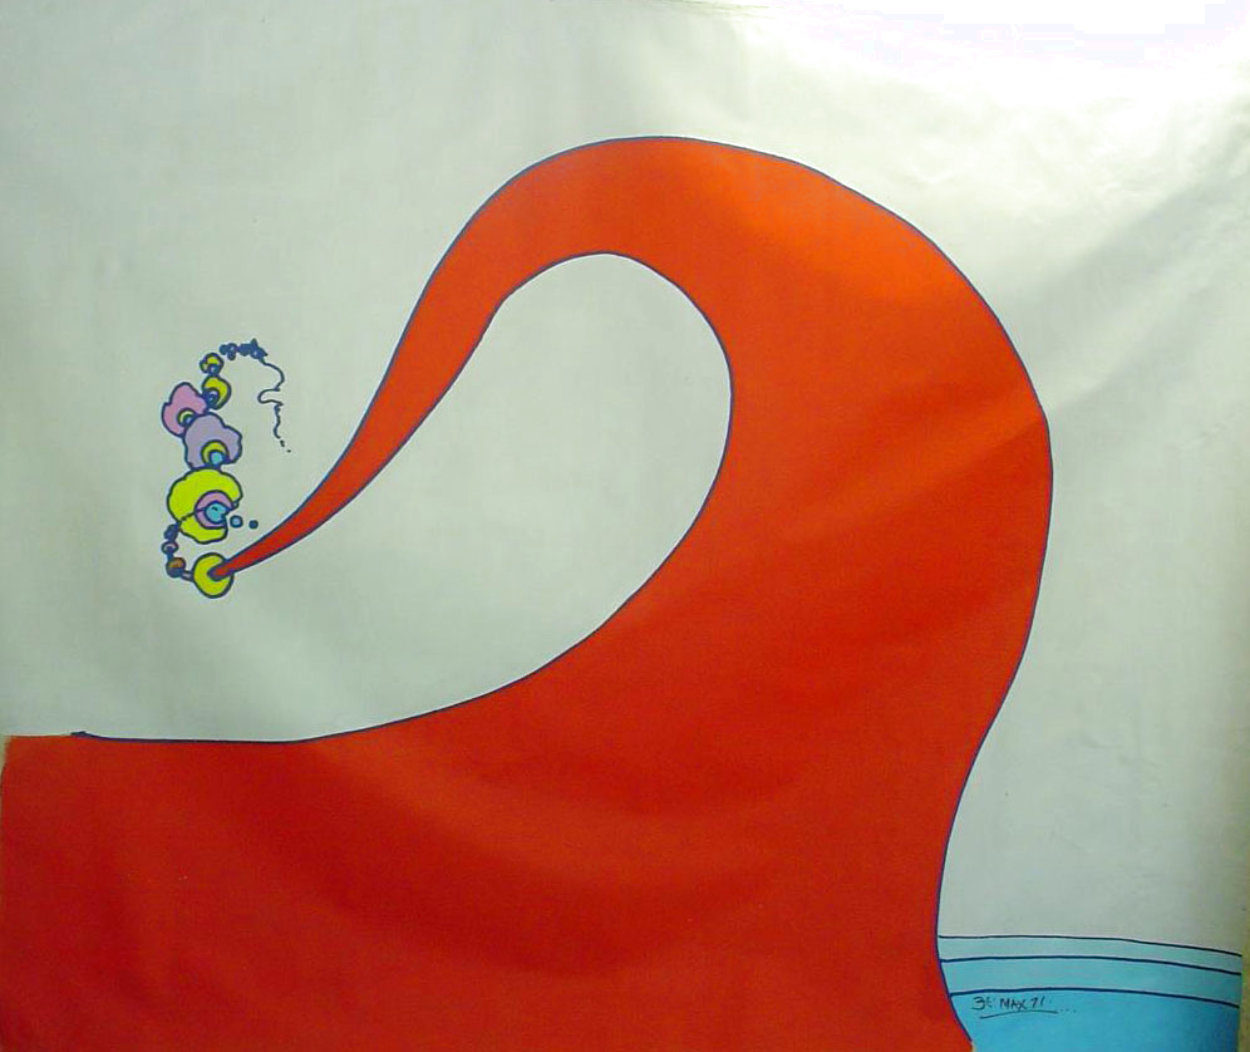 Abstract III Vintage Acrylic 96x108 in 1970 Super Huge Original Painting by Peter Max